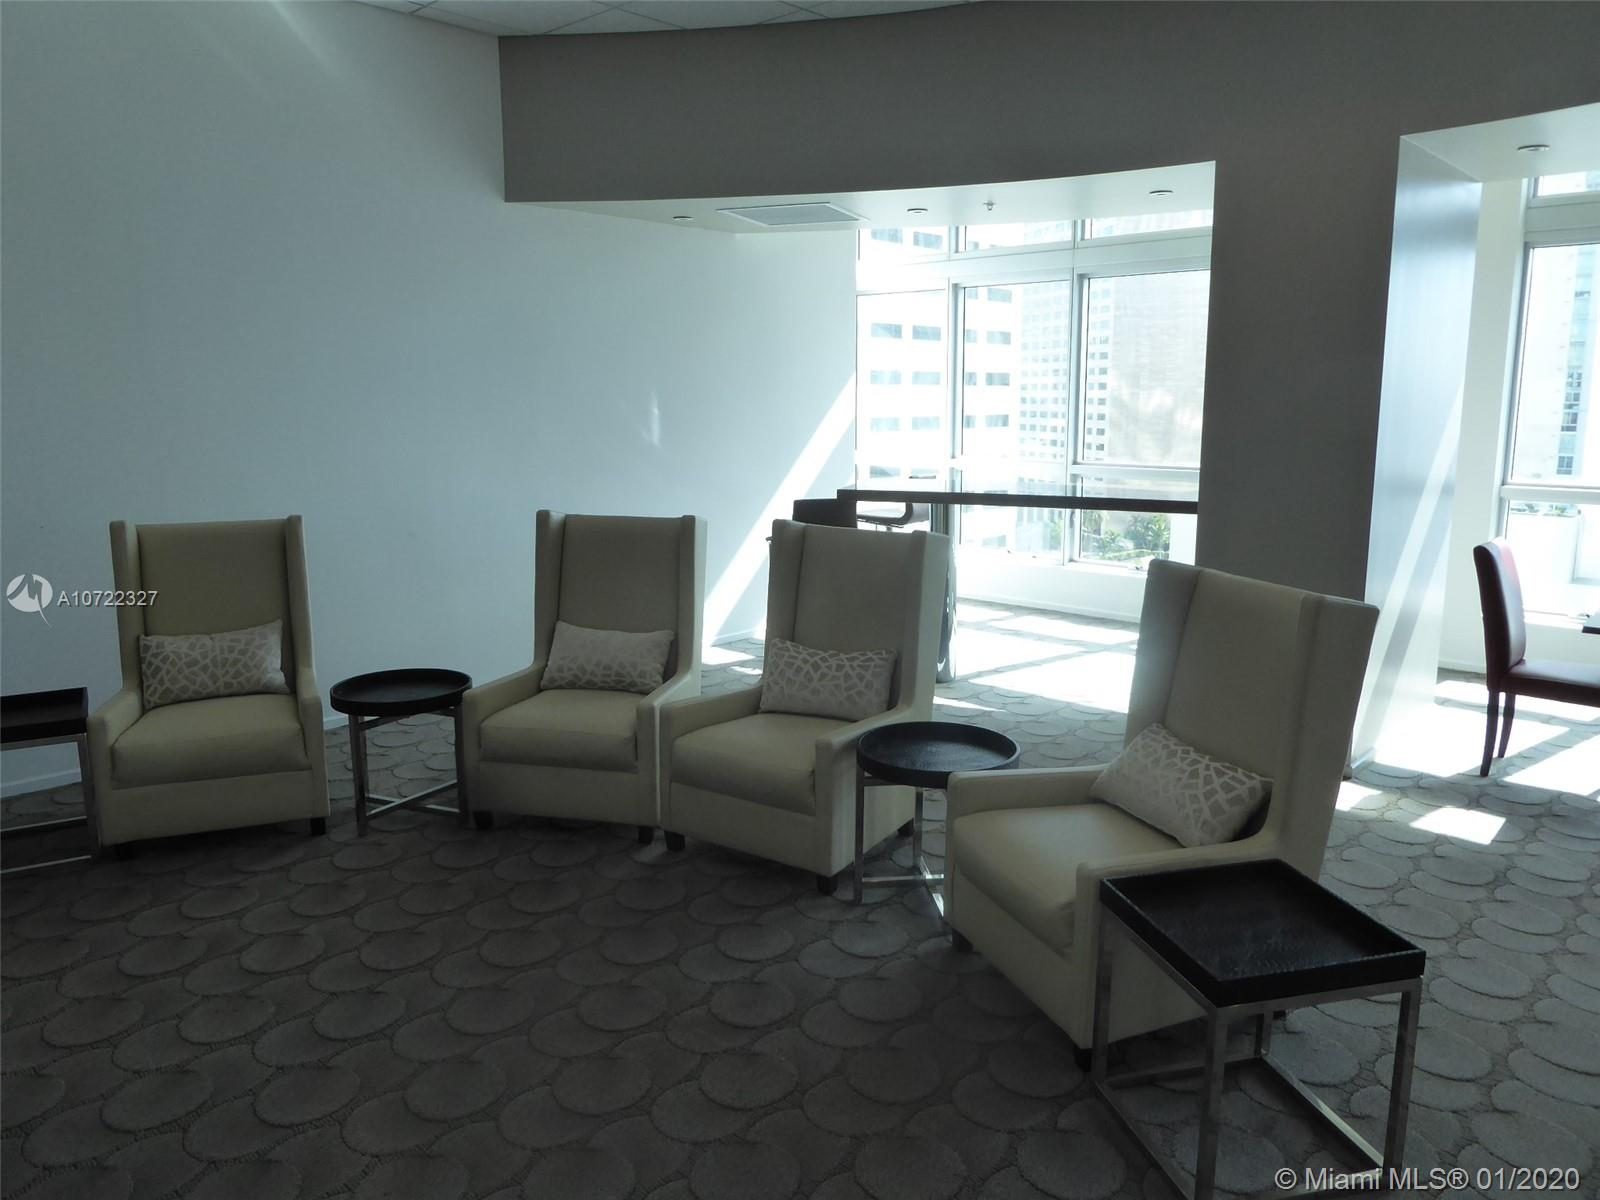 300 Biscayne blvd-PH 3802 miami-fl-33131-a10722327-Pic46